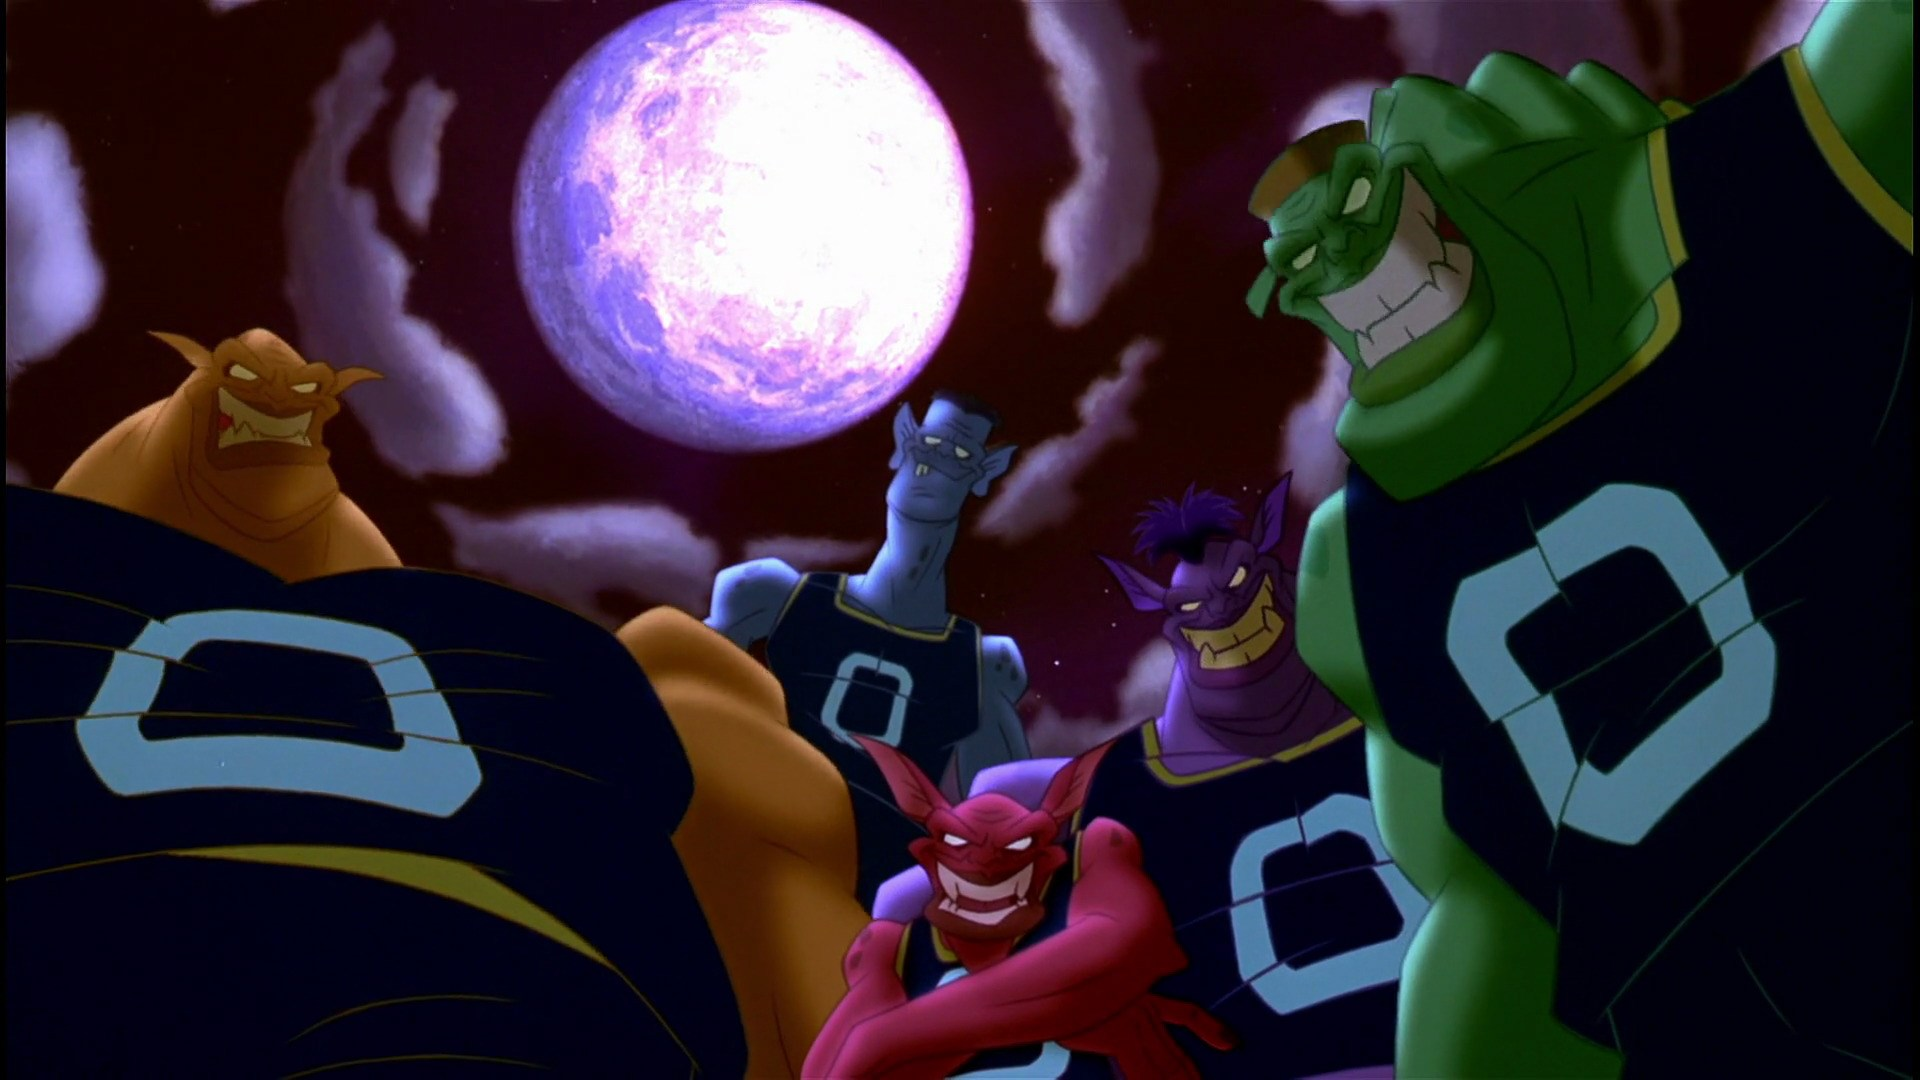 File:Monstars.jpg